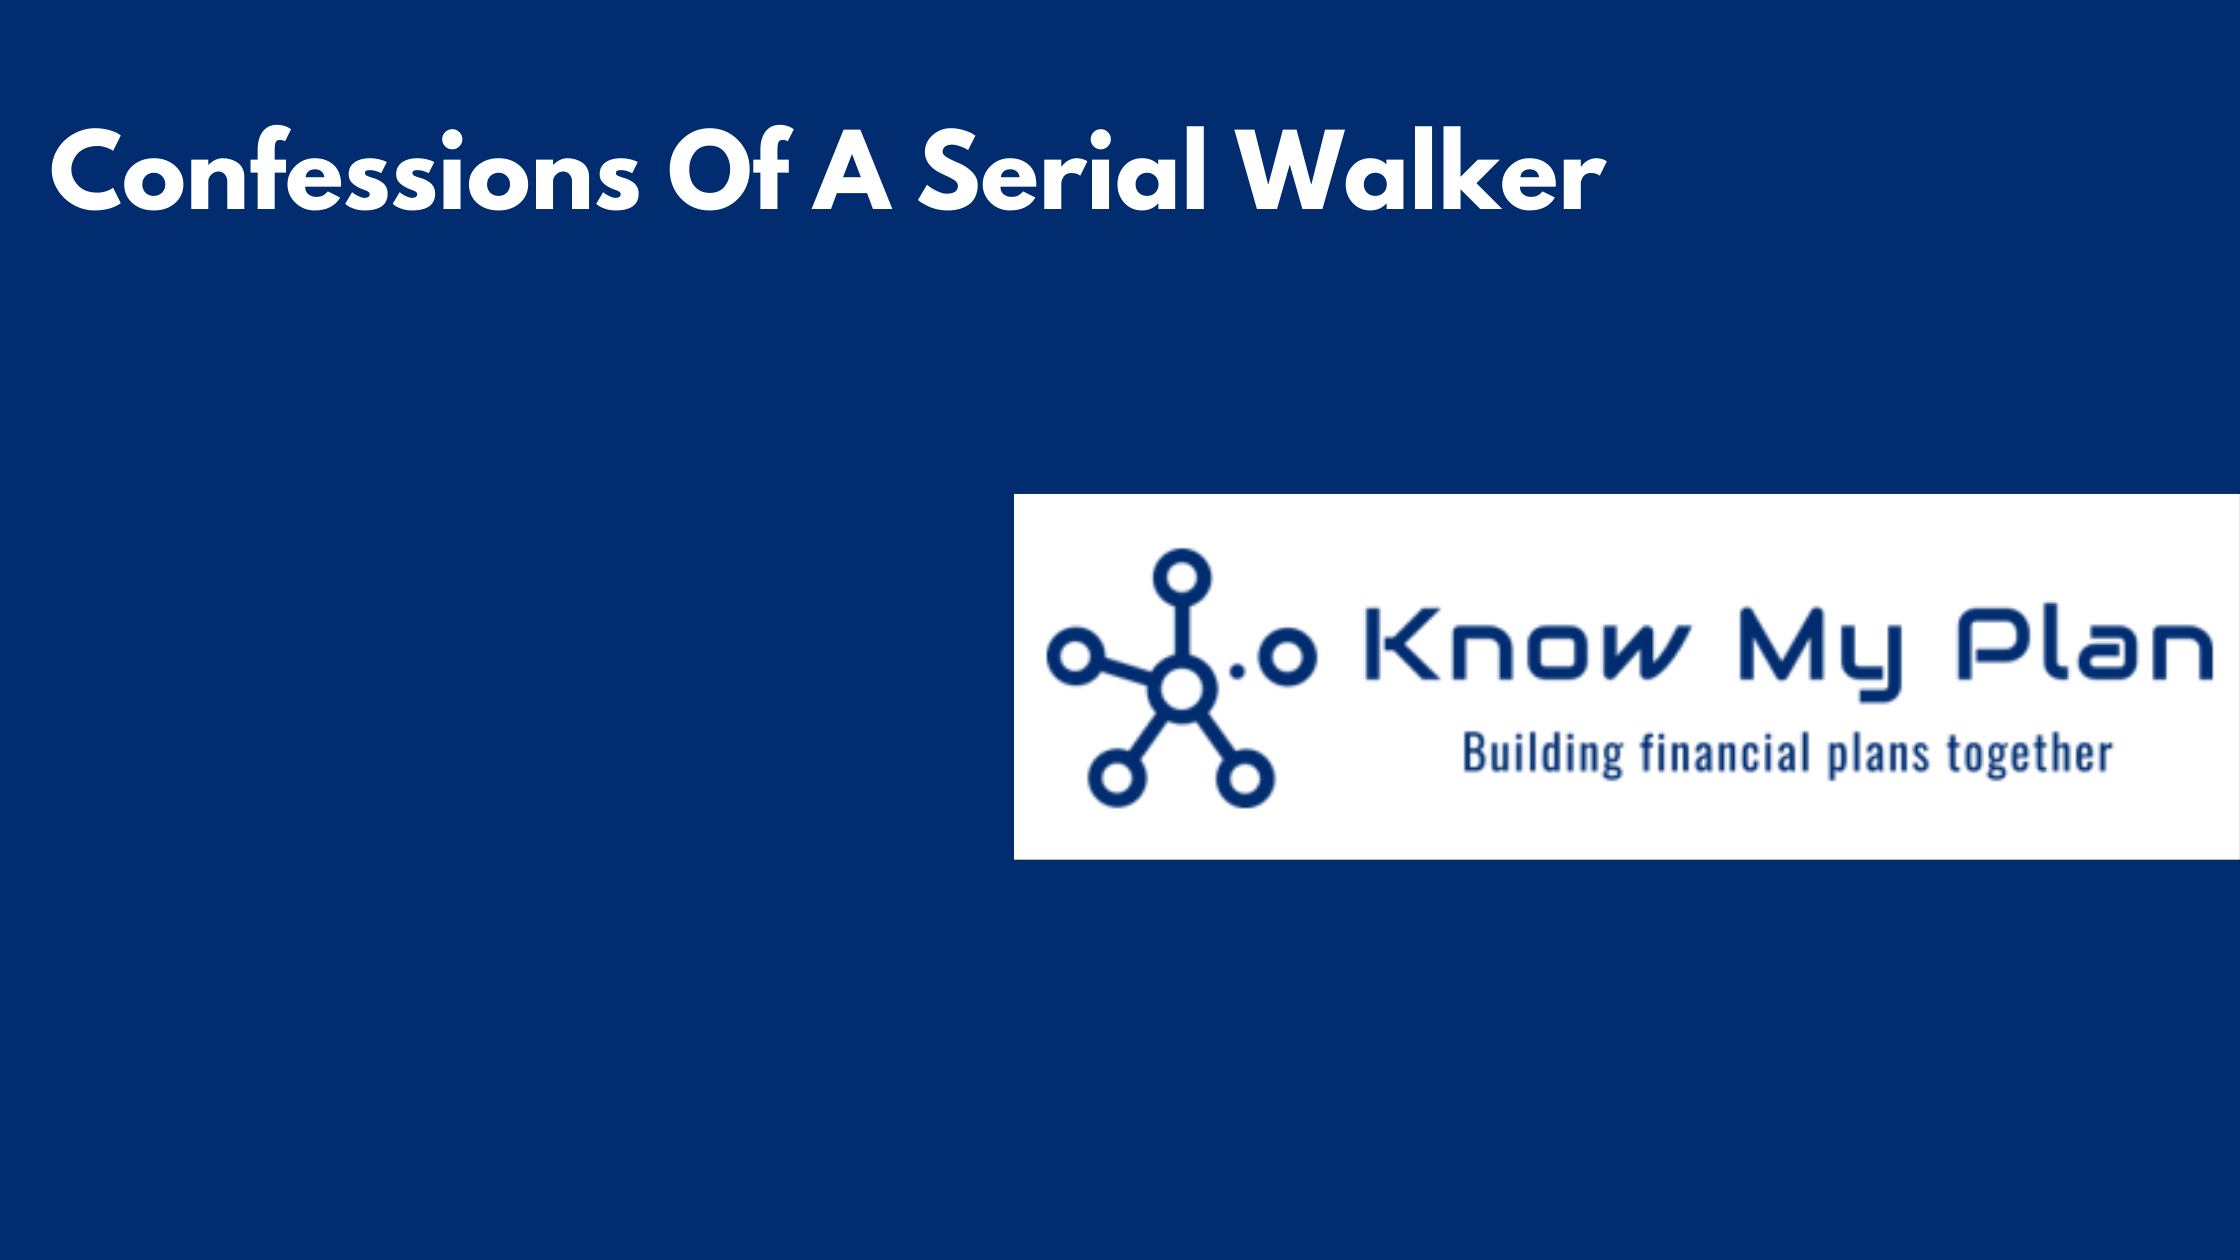 Confessions Of A Serial Walker